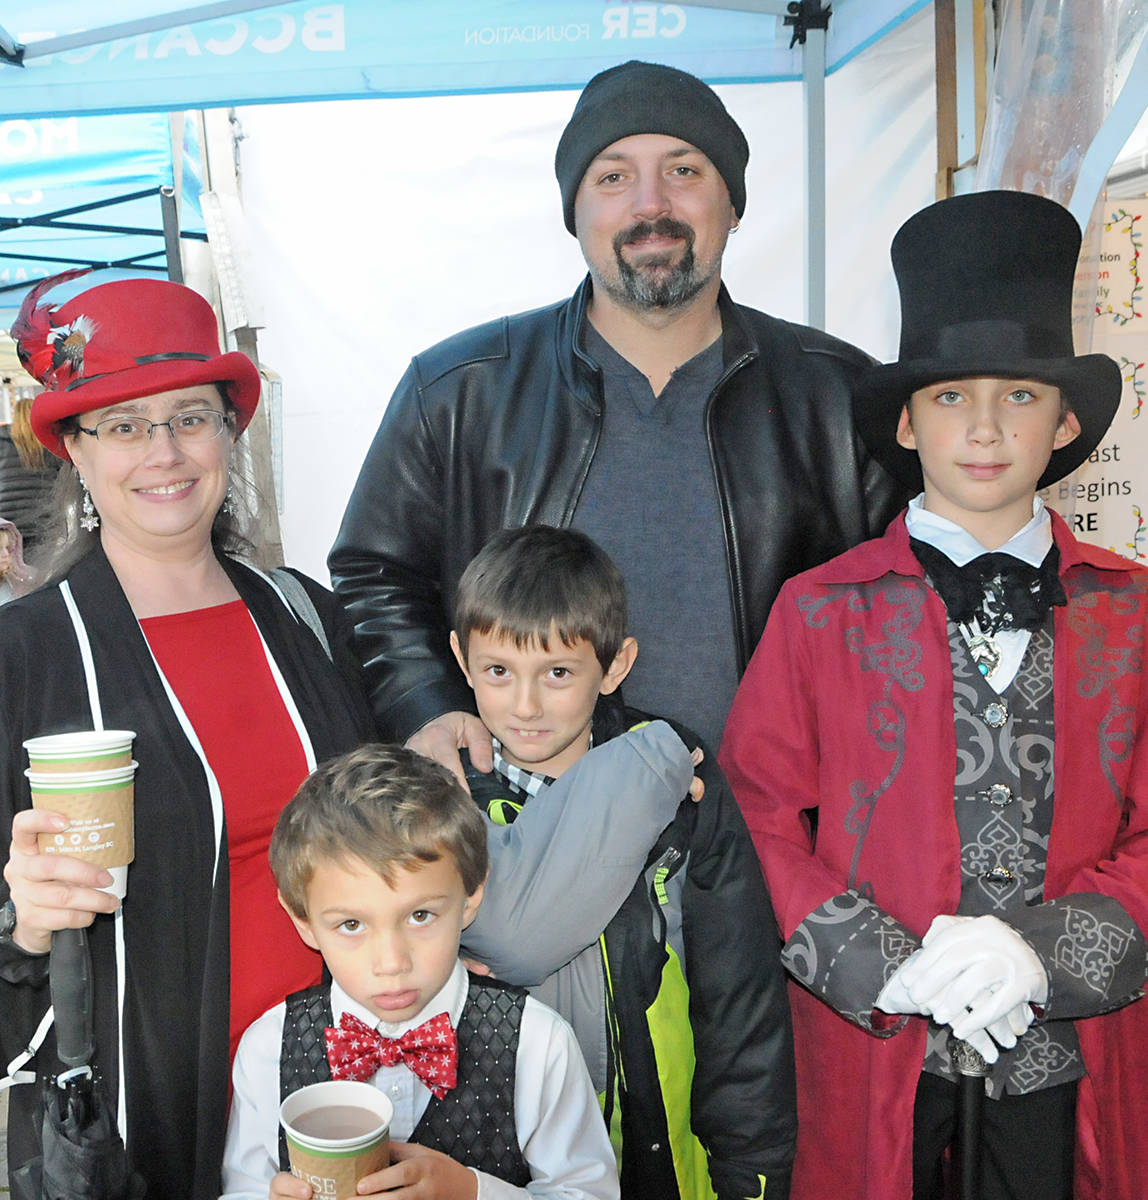 Khelben Swetlikoff and his family at the Krause Berry pancake with Santa fundraiser. Right to left: Qetrina Swetlikoff, brothers Viktor and Dante, dad Steve and Khelben. Black Press photo